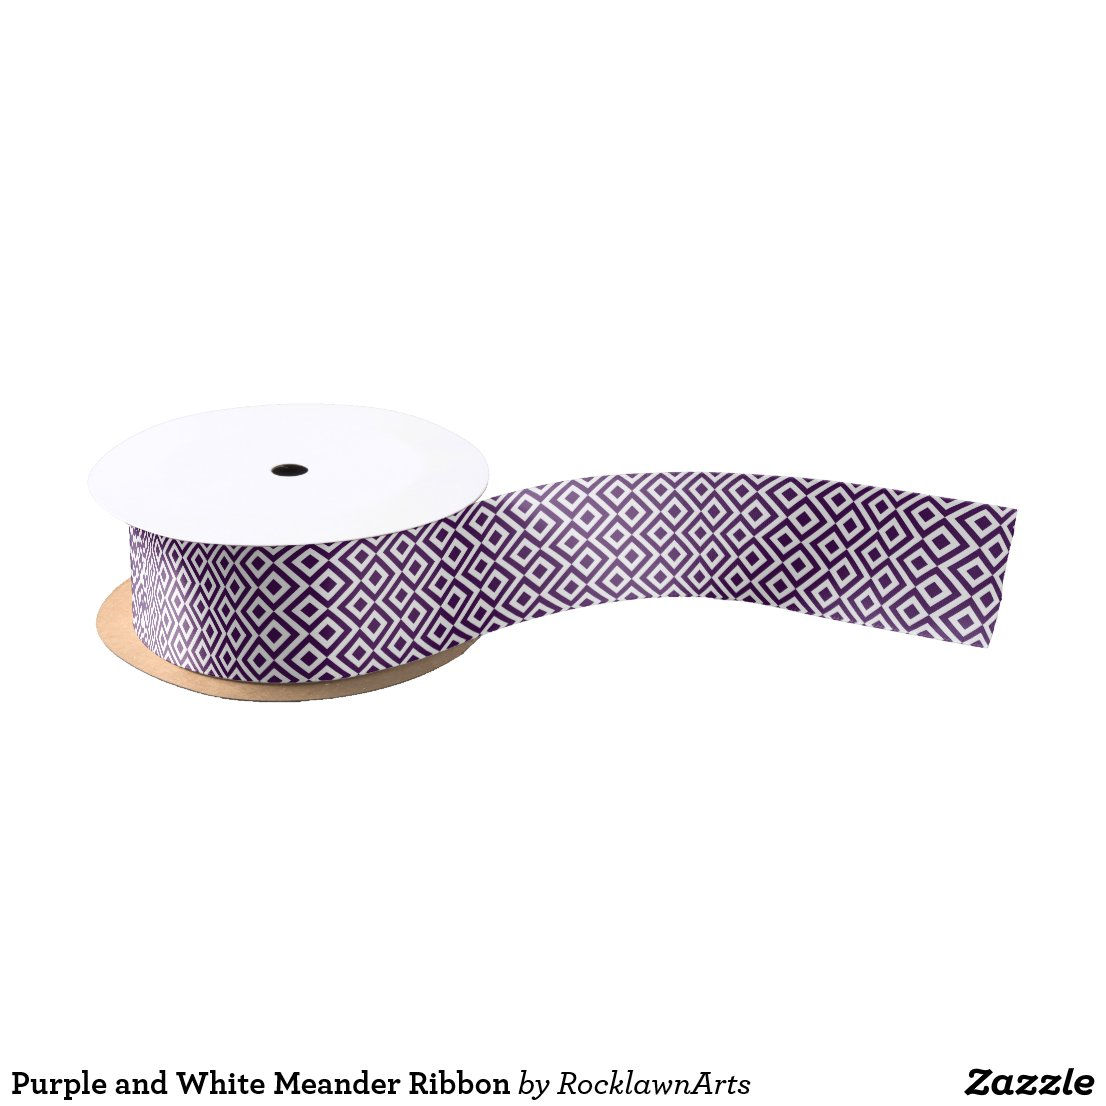 Purple and White Meander Ribbon